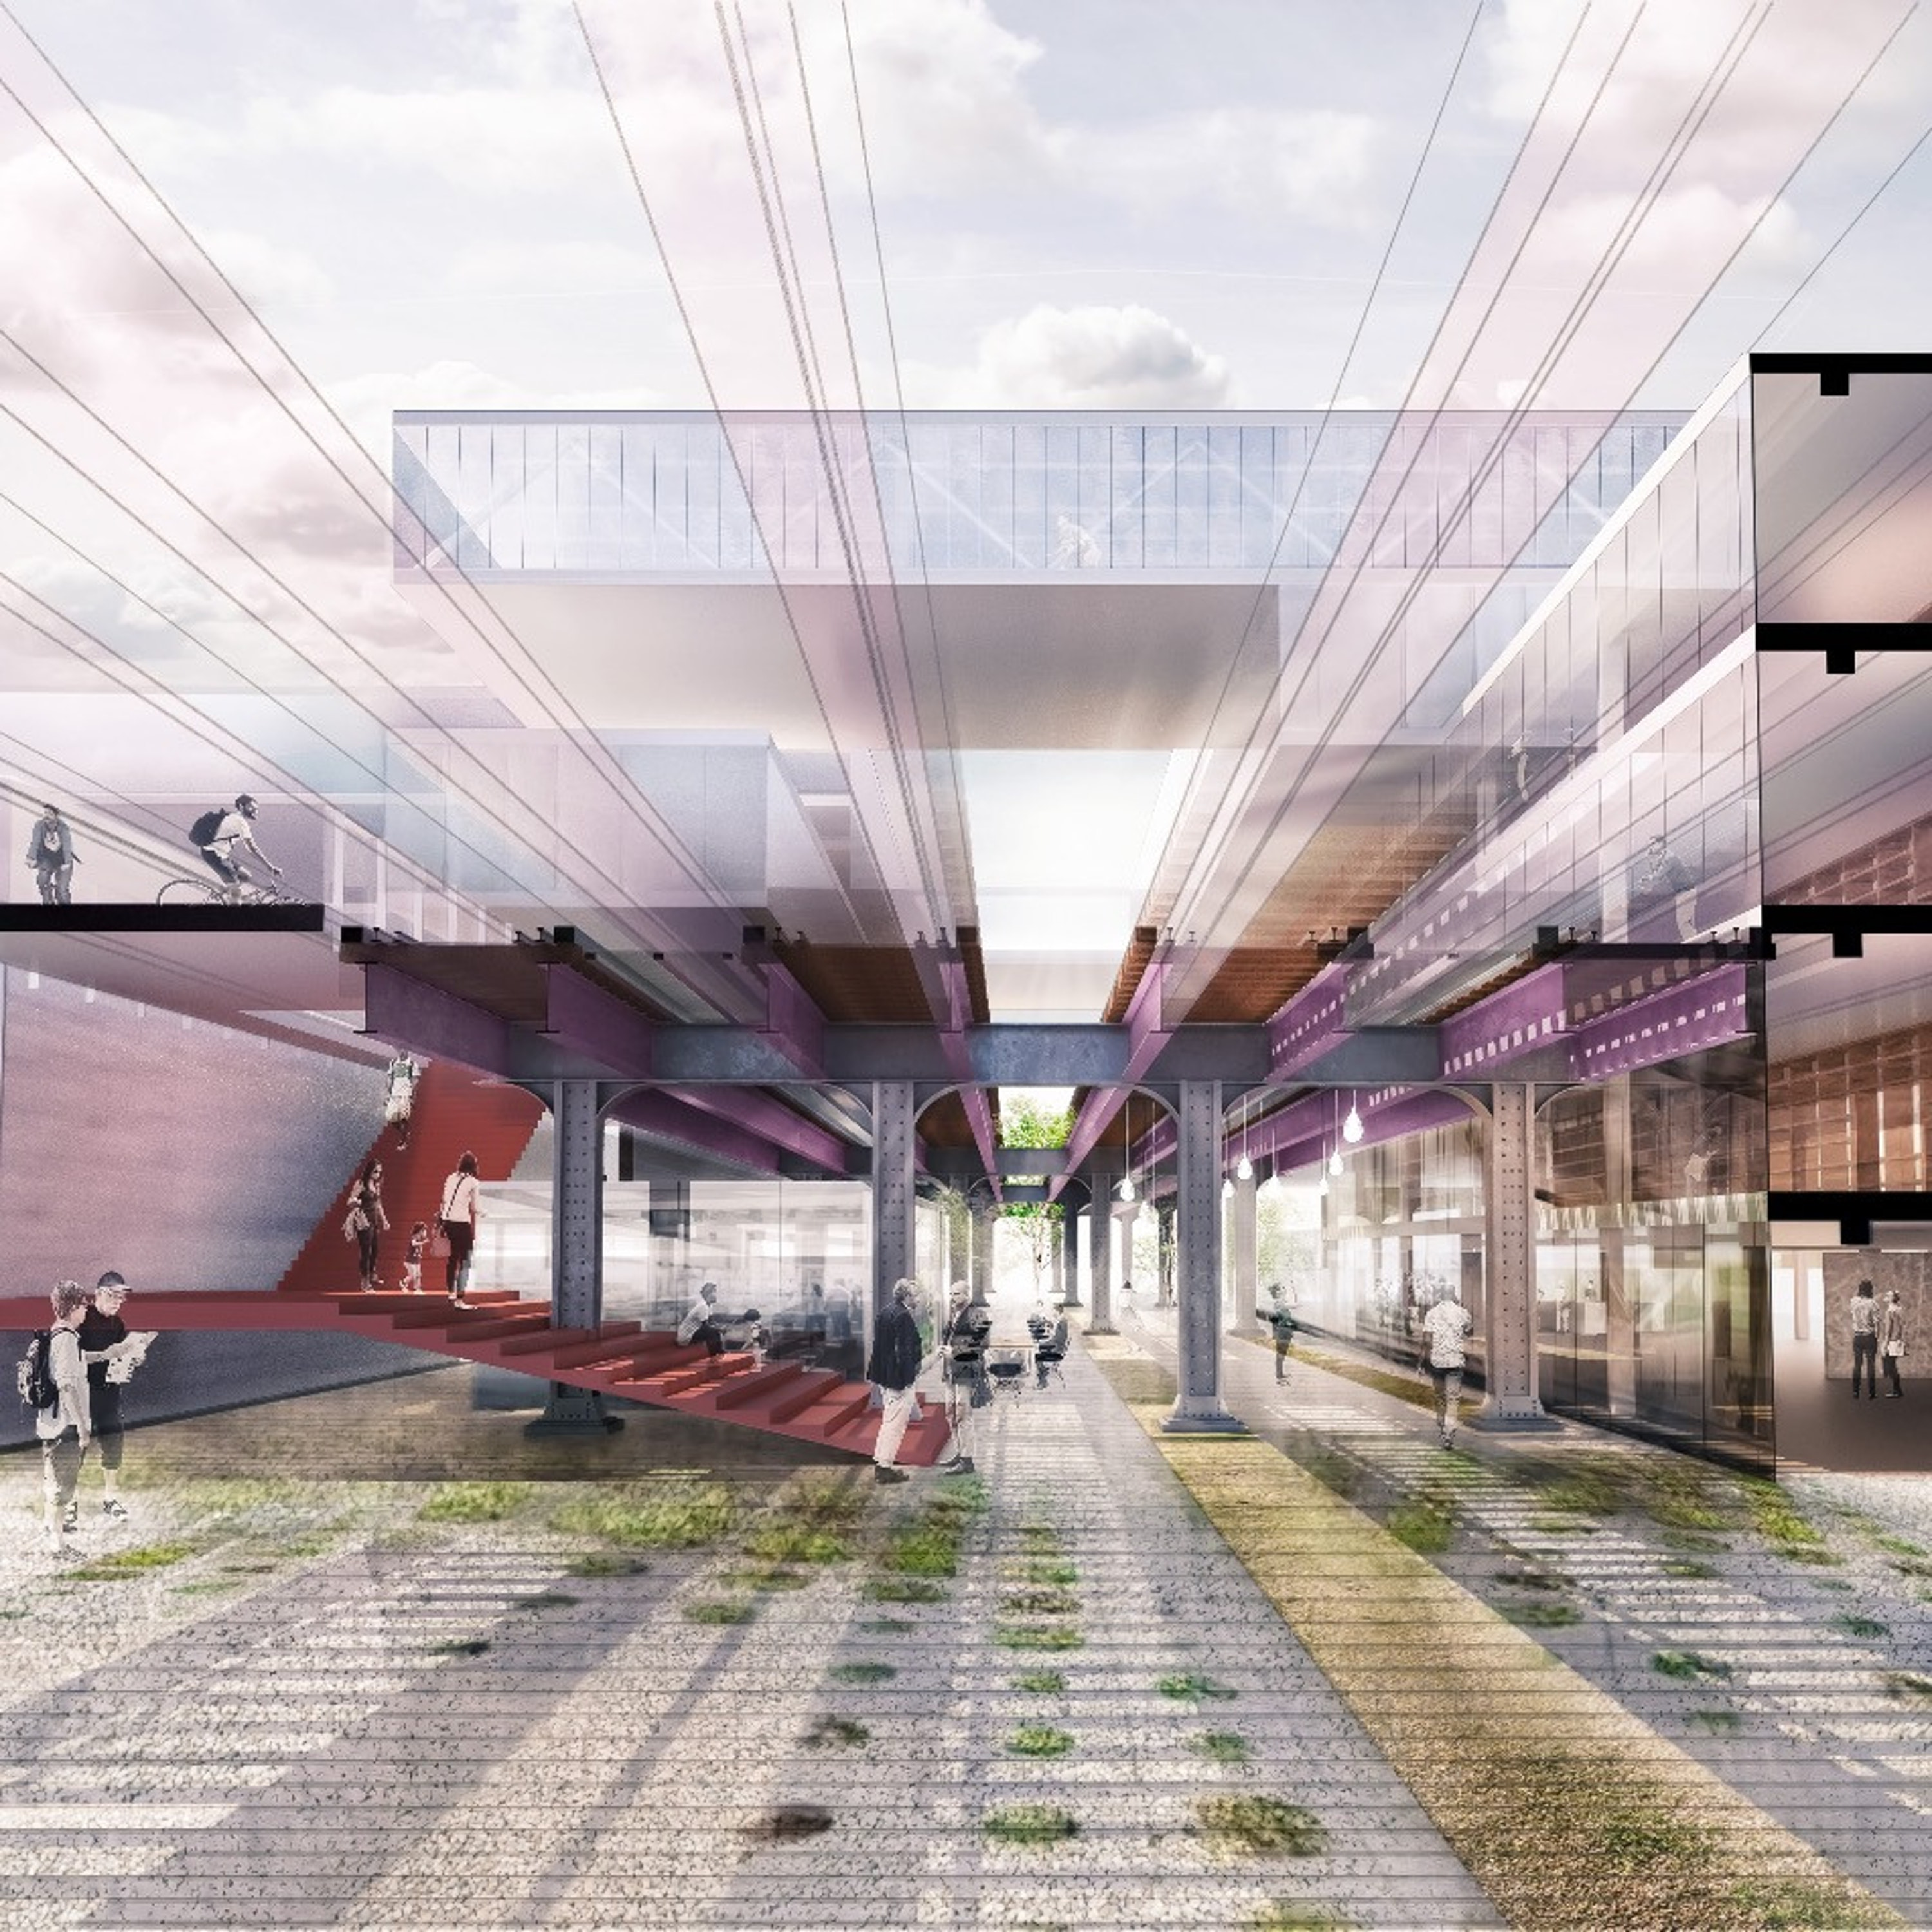 L'eftspace: The Need for Inhabitable Infrastructure 07